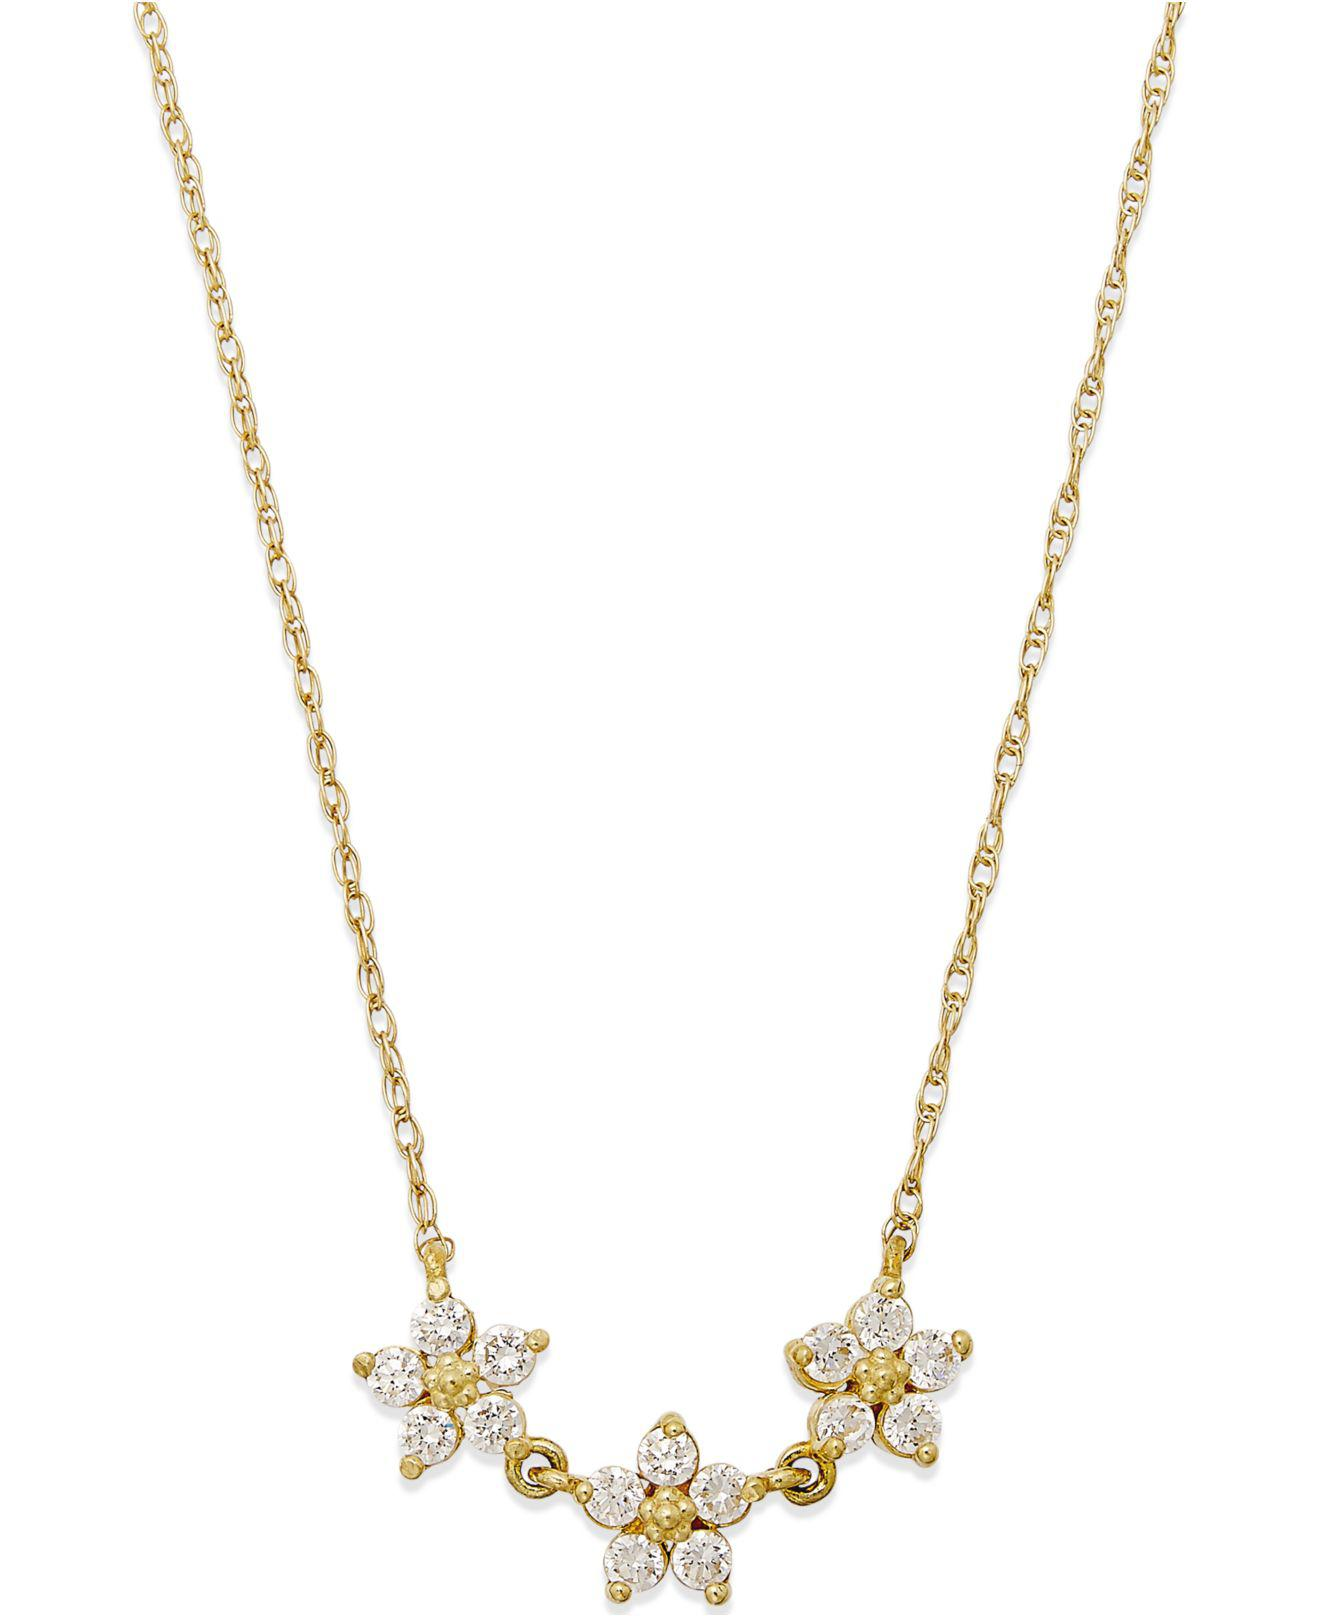 pin cleef yellow flower and gold pendant necklace van sapphire arpels diamond